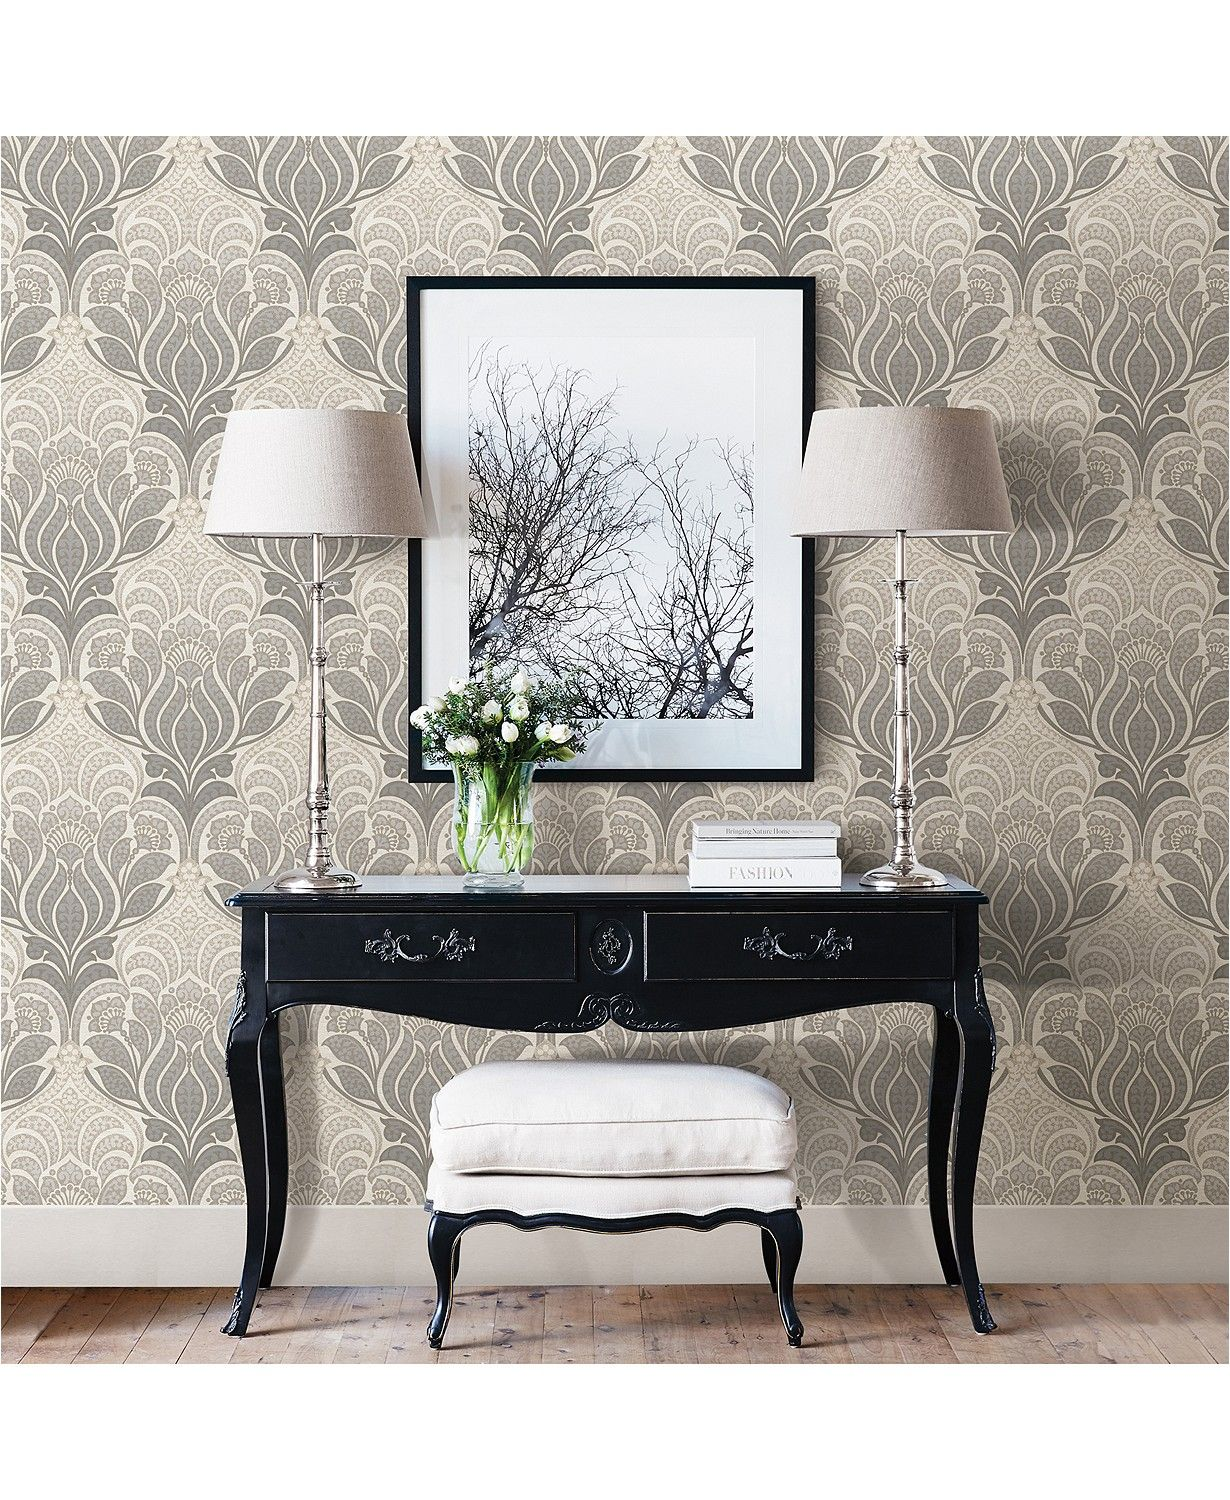 Brewster Home Fashions Charisma Peel And Stick Wallpaper Reviews Wallpaper Home Decor Macy S Nuwallpaper Peel And Stick Wallpaper Decor